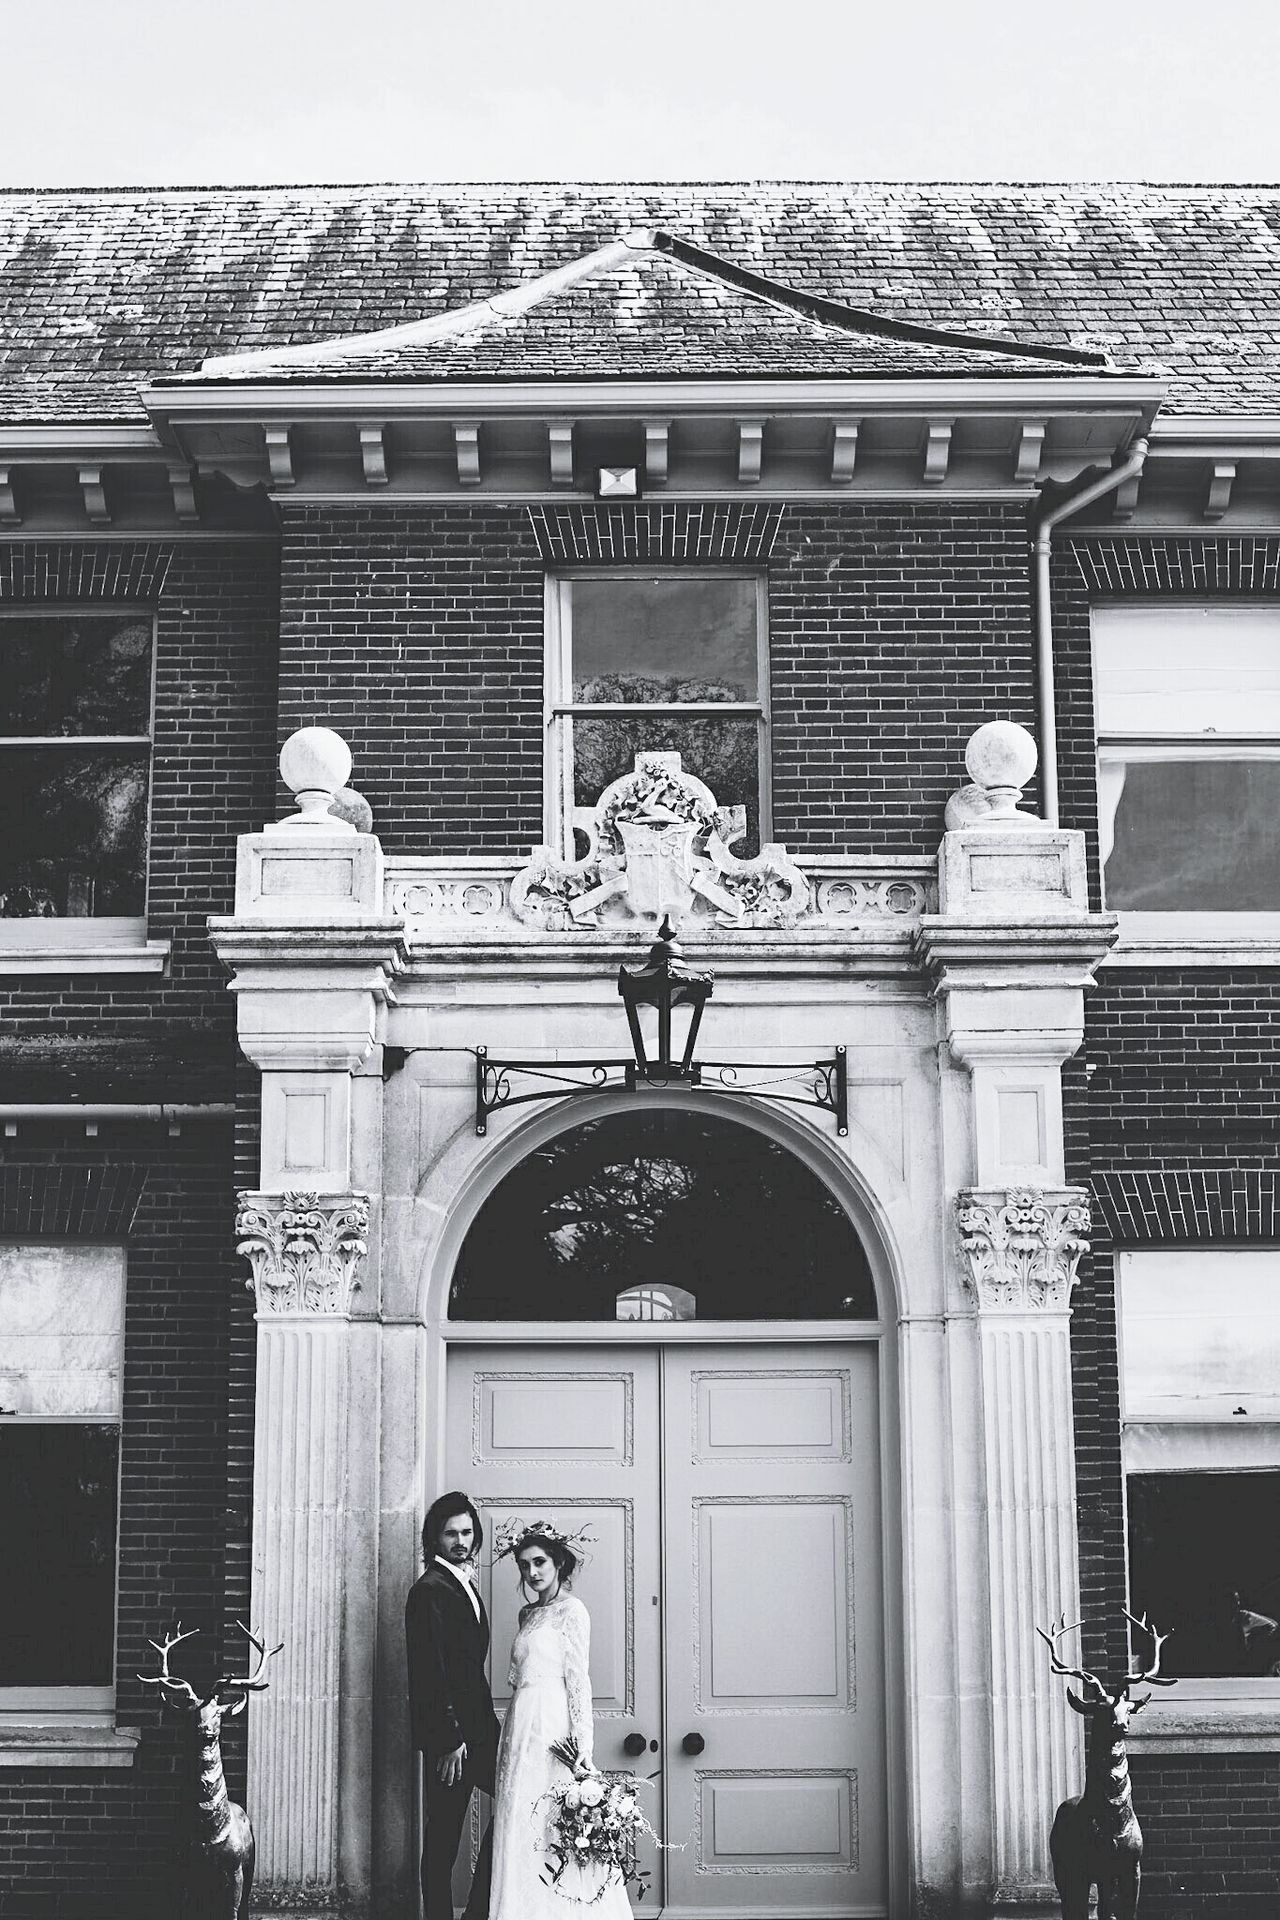 Building Exterior Built Structure Outdoors Architecture Entrance Arch Day Wedding Wedding Dress Wedding Venue People Young Women Two People Photoshoot Fashion Togetherness Beautiful People Standing Lauraloophotography